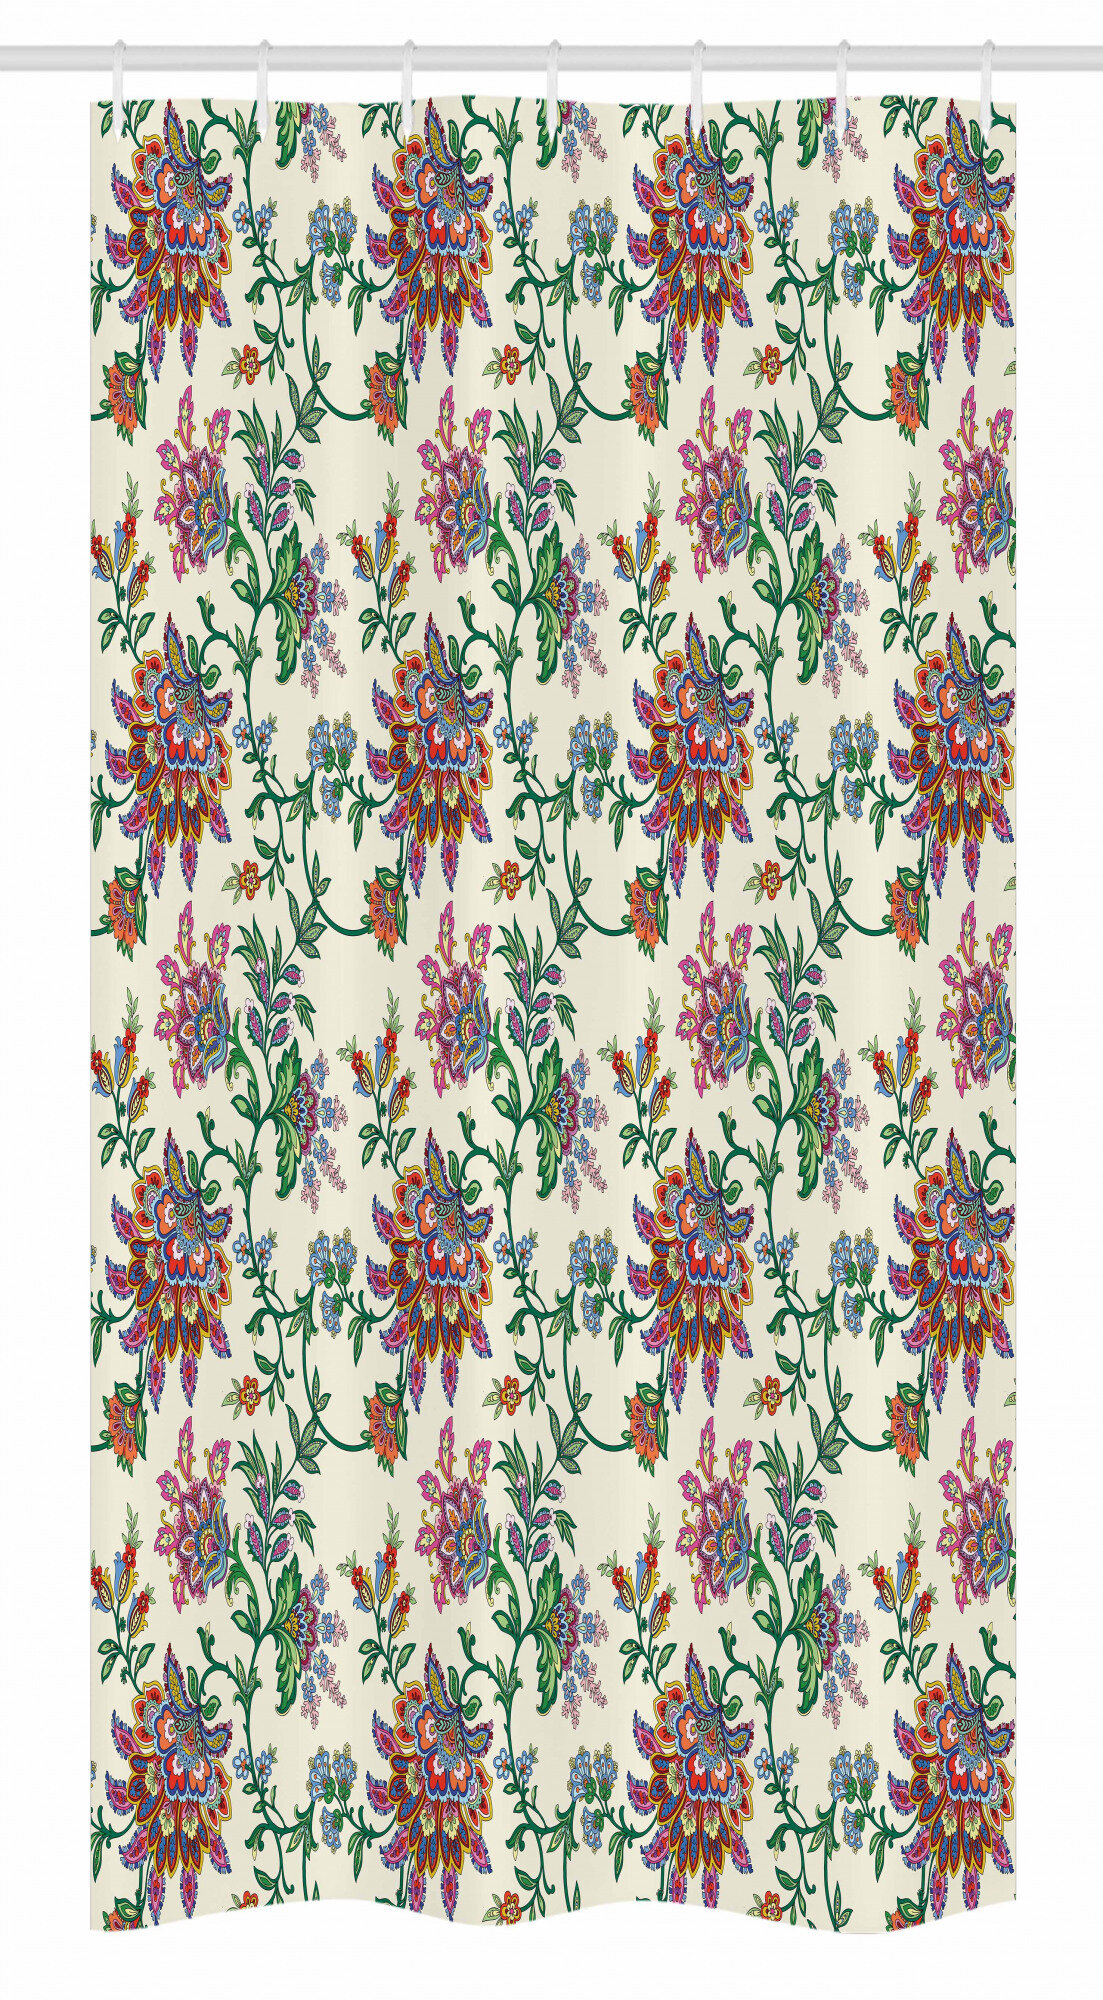 Ambesonne Bohemian Stall Shower Curtain Retro Colourful Flowers Pattern Exquisite Blooms Boho Vintage Floral Art Fabric Bathroom Decor Set With